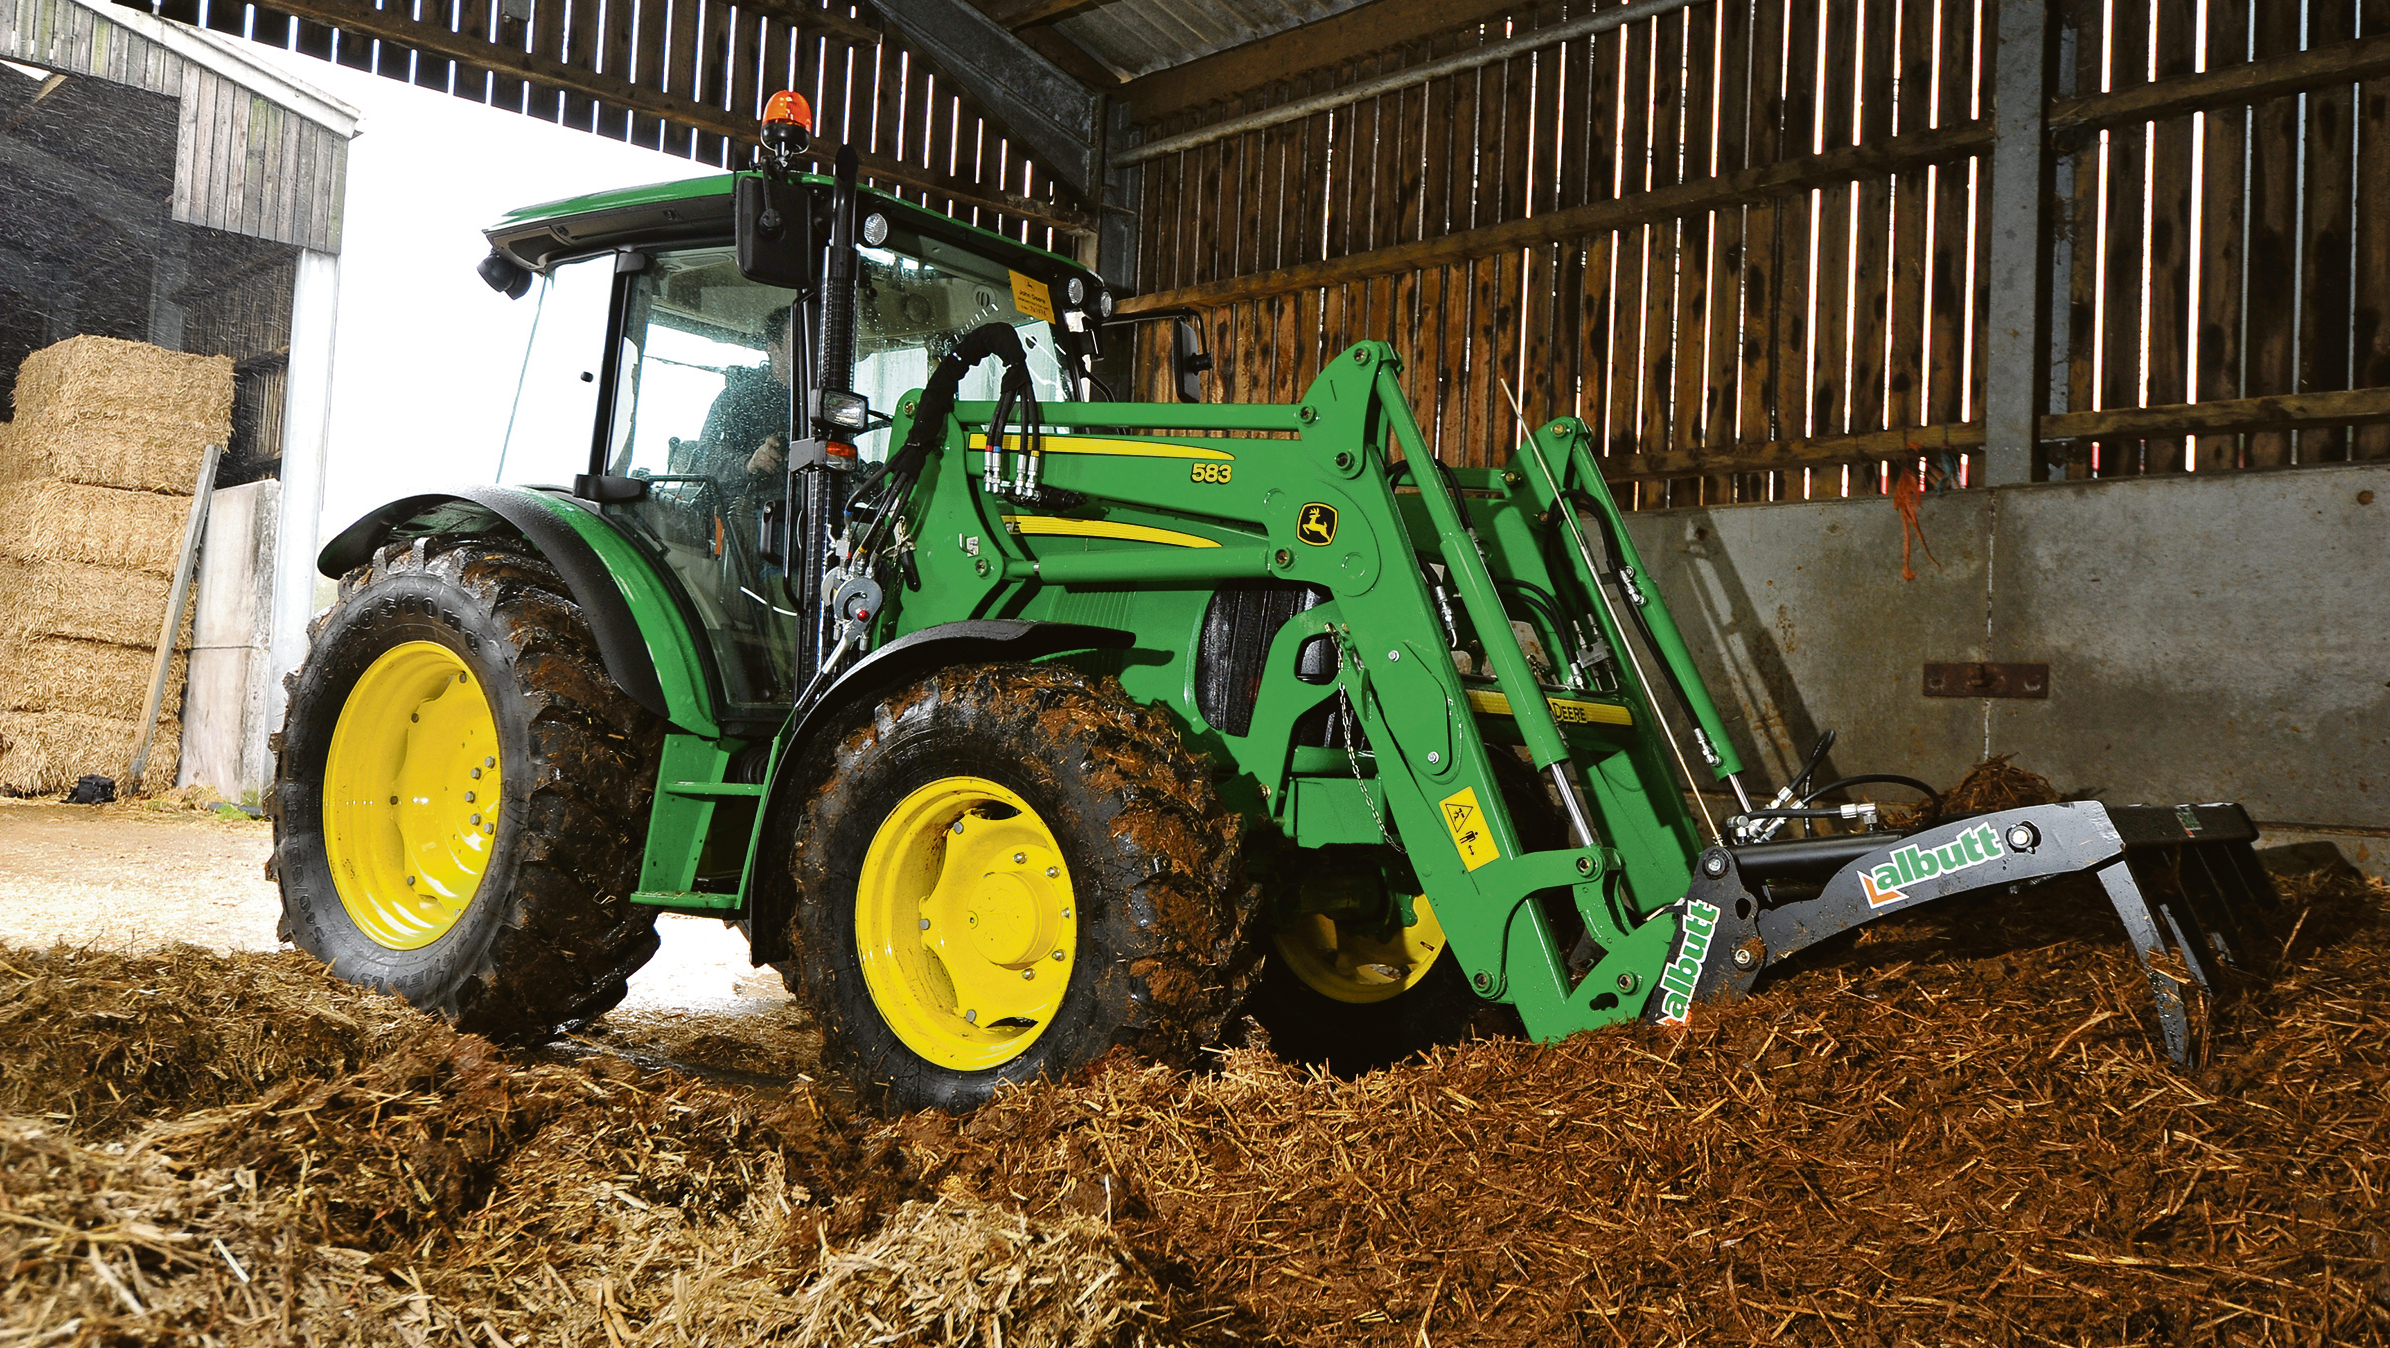 On test: John Deere 5R tractor with 583 loader